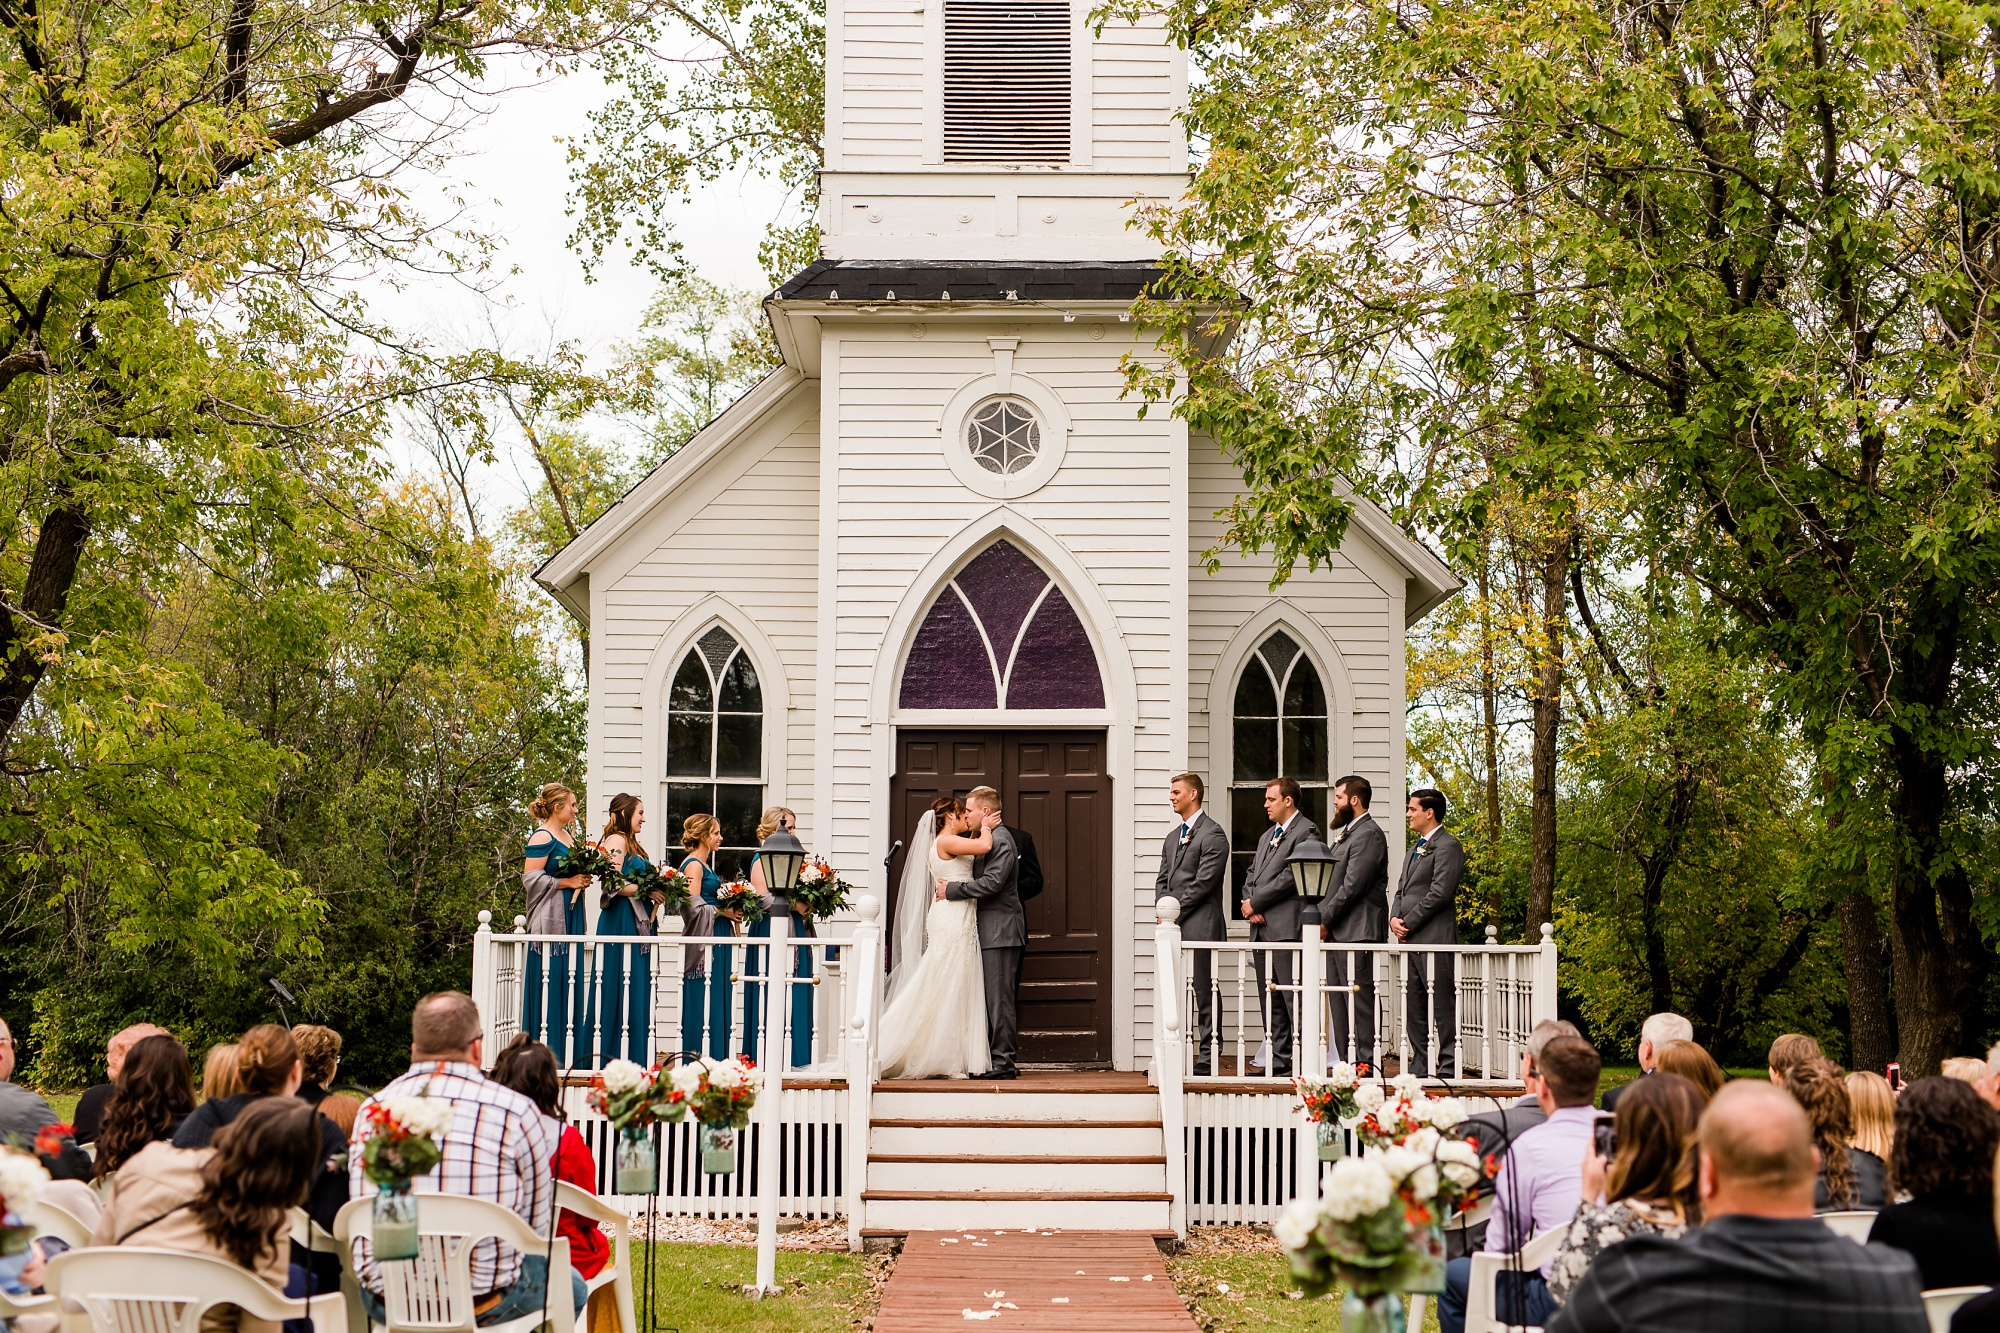 Amber Langerud Photography_Moohread, Outdoor, Barn Wedding at A Friends House_7110.jpg